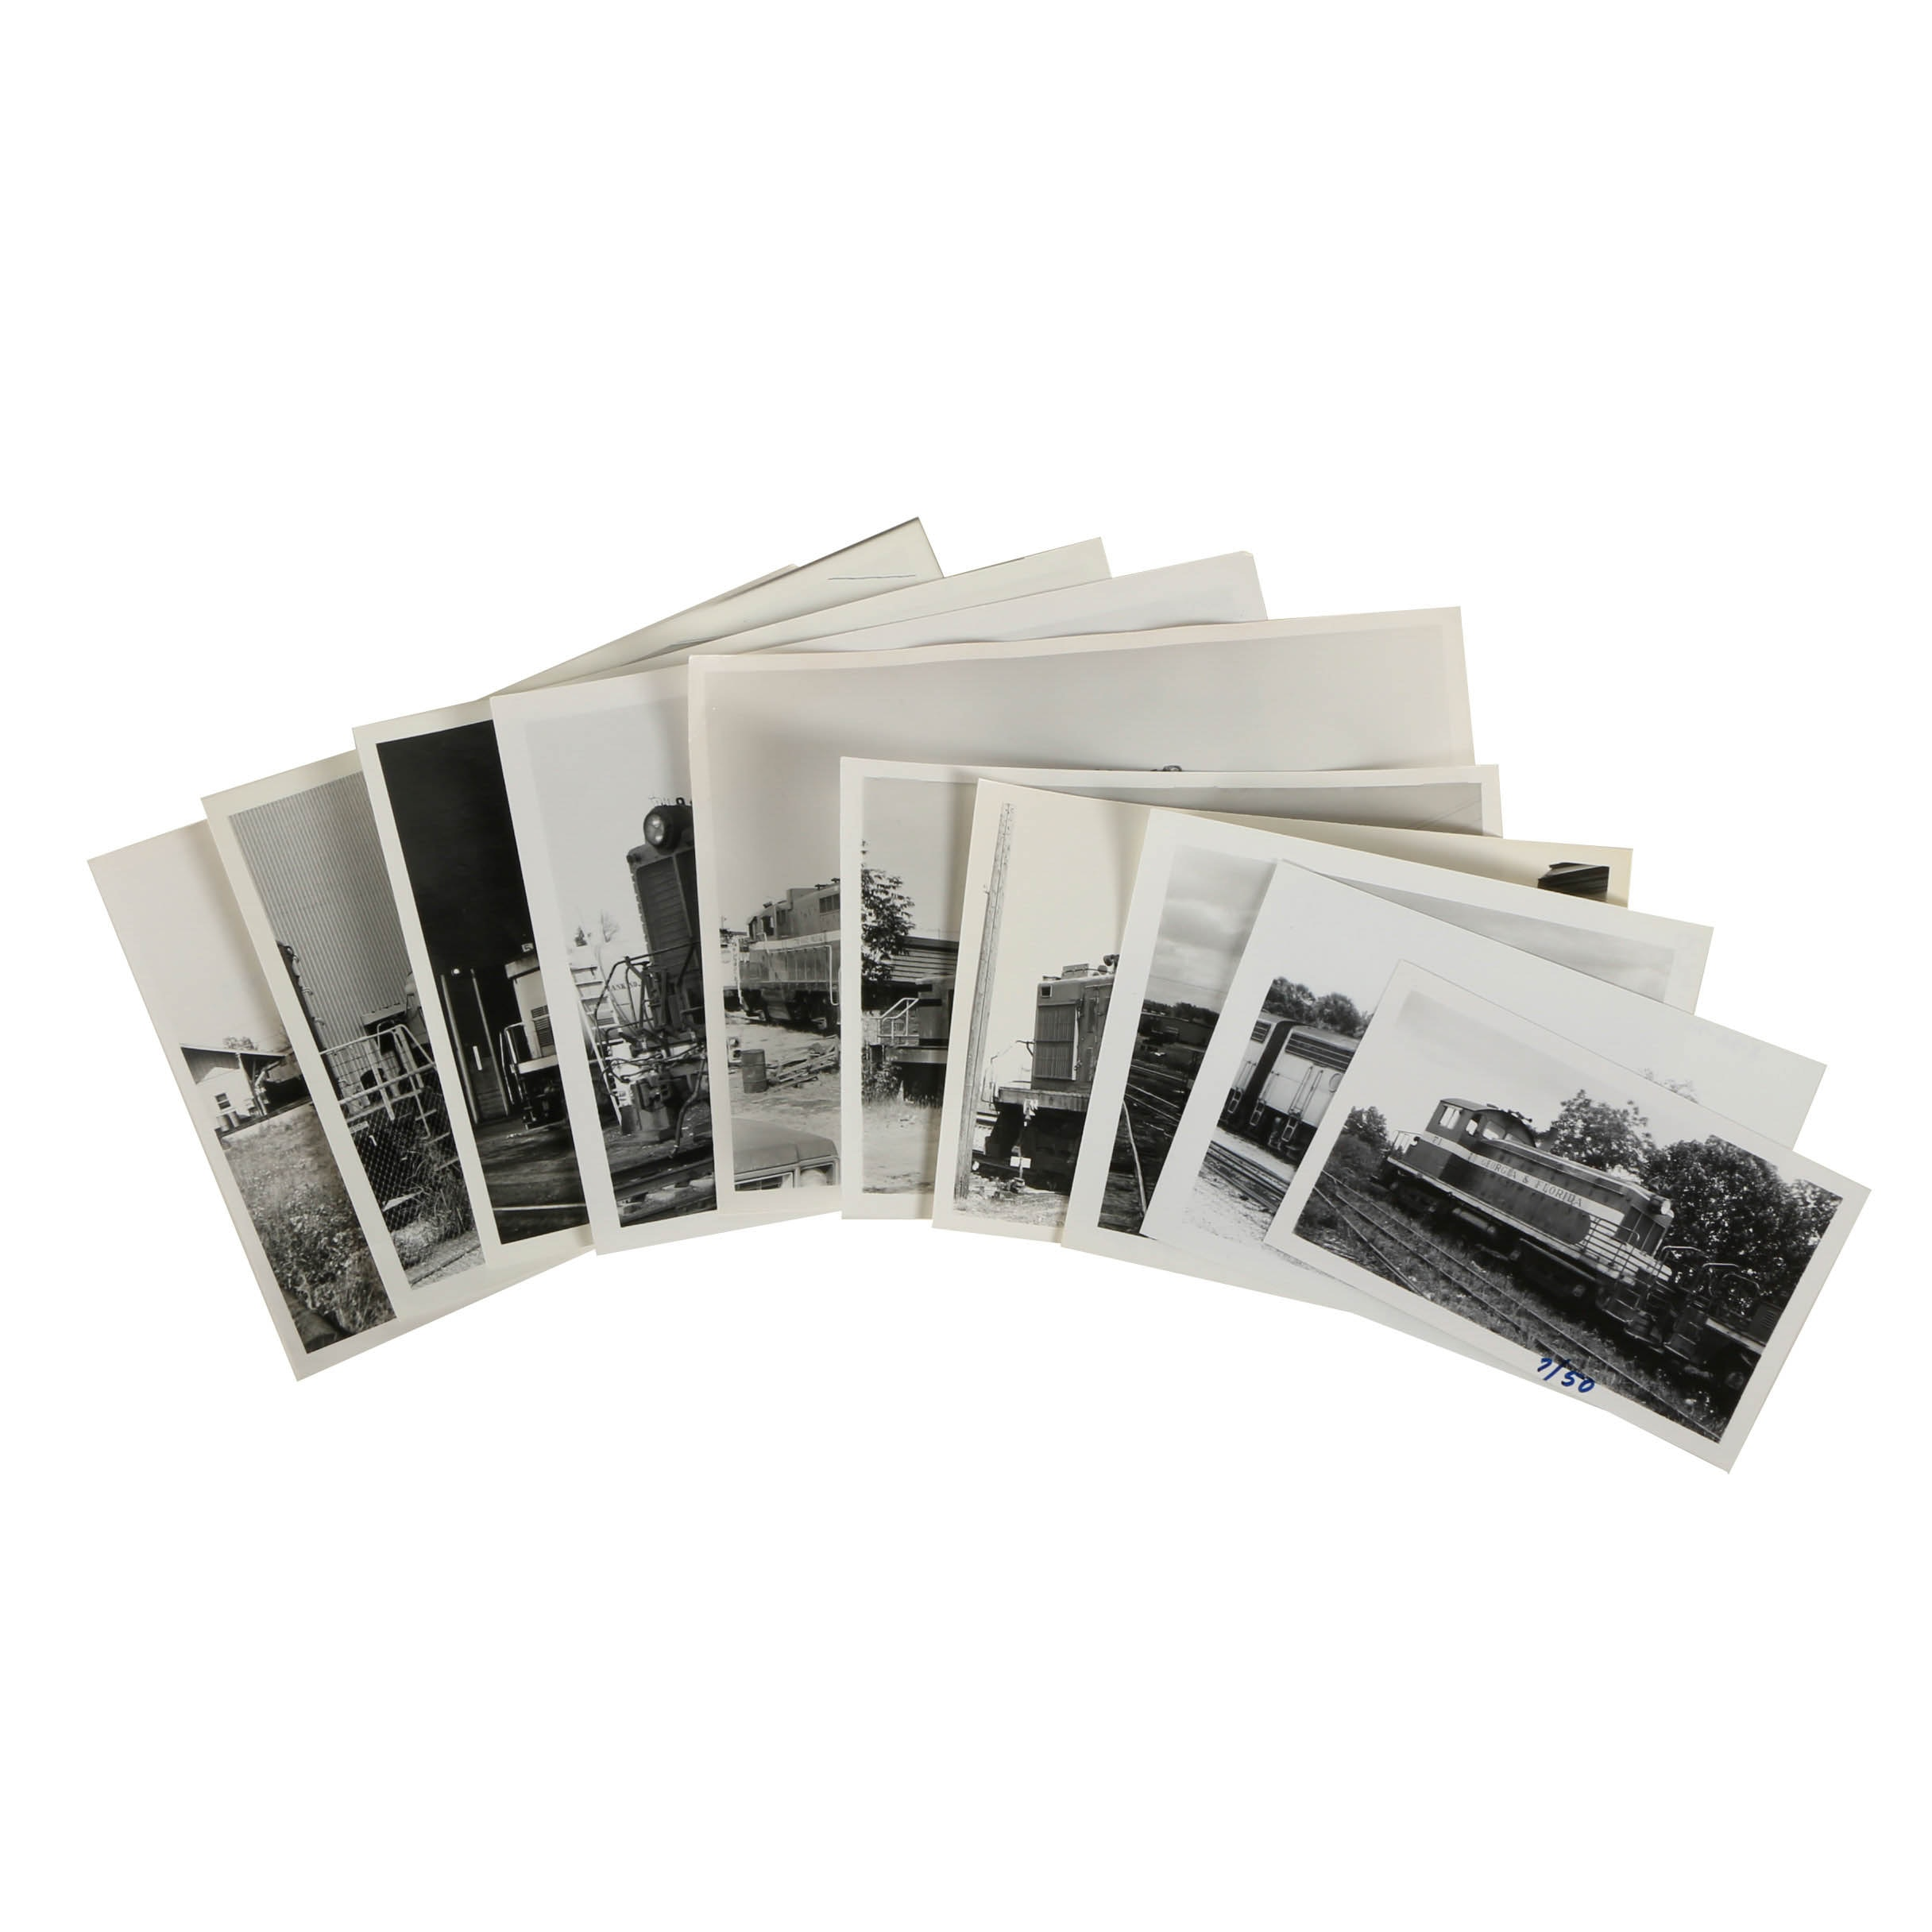 Variety of Late 20th Century Black and White Train Photographs